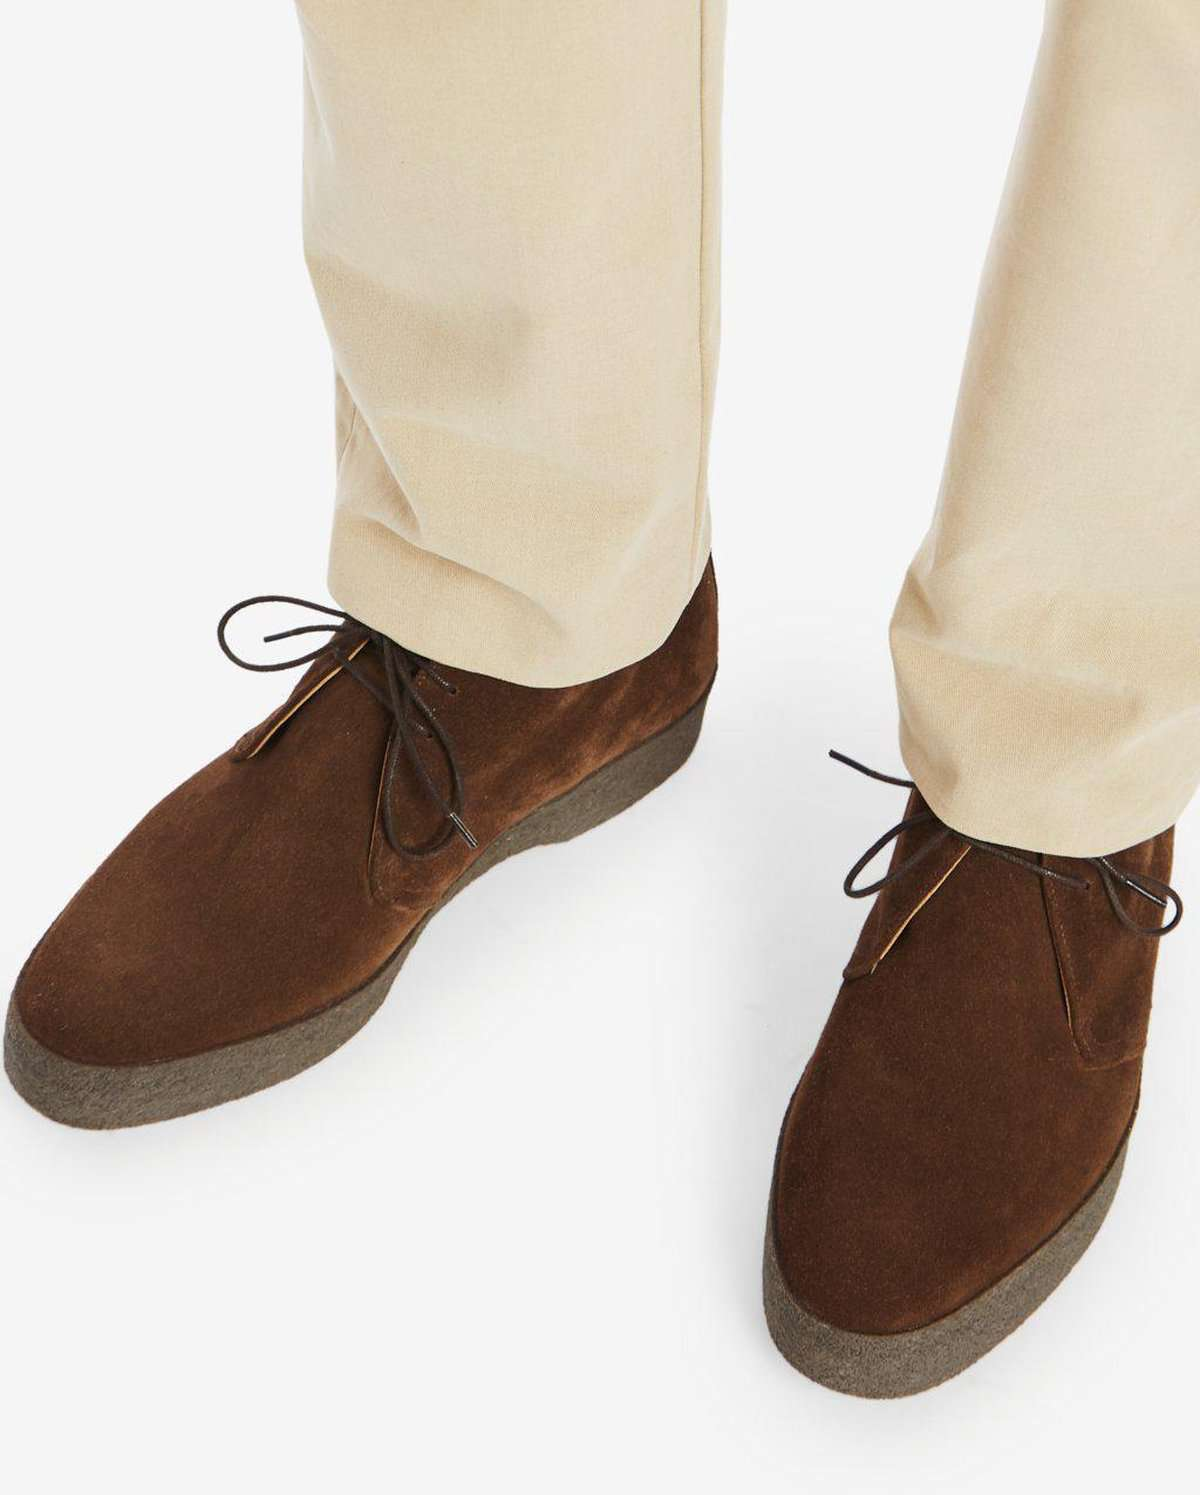 035931aa2da61 Suede Chukka Boot | Made By Sanders For Private White V.C. ...